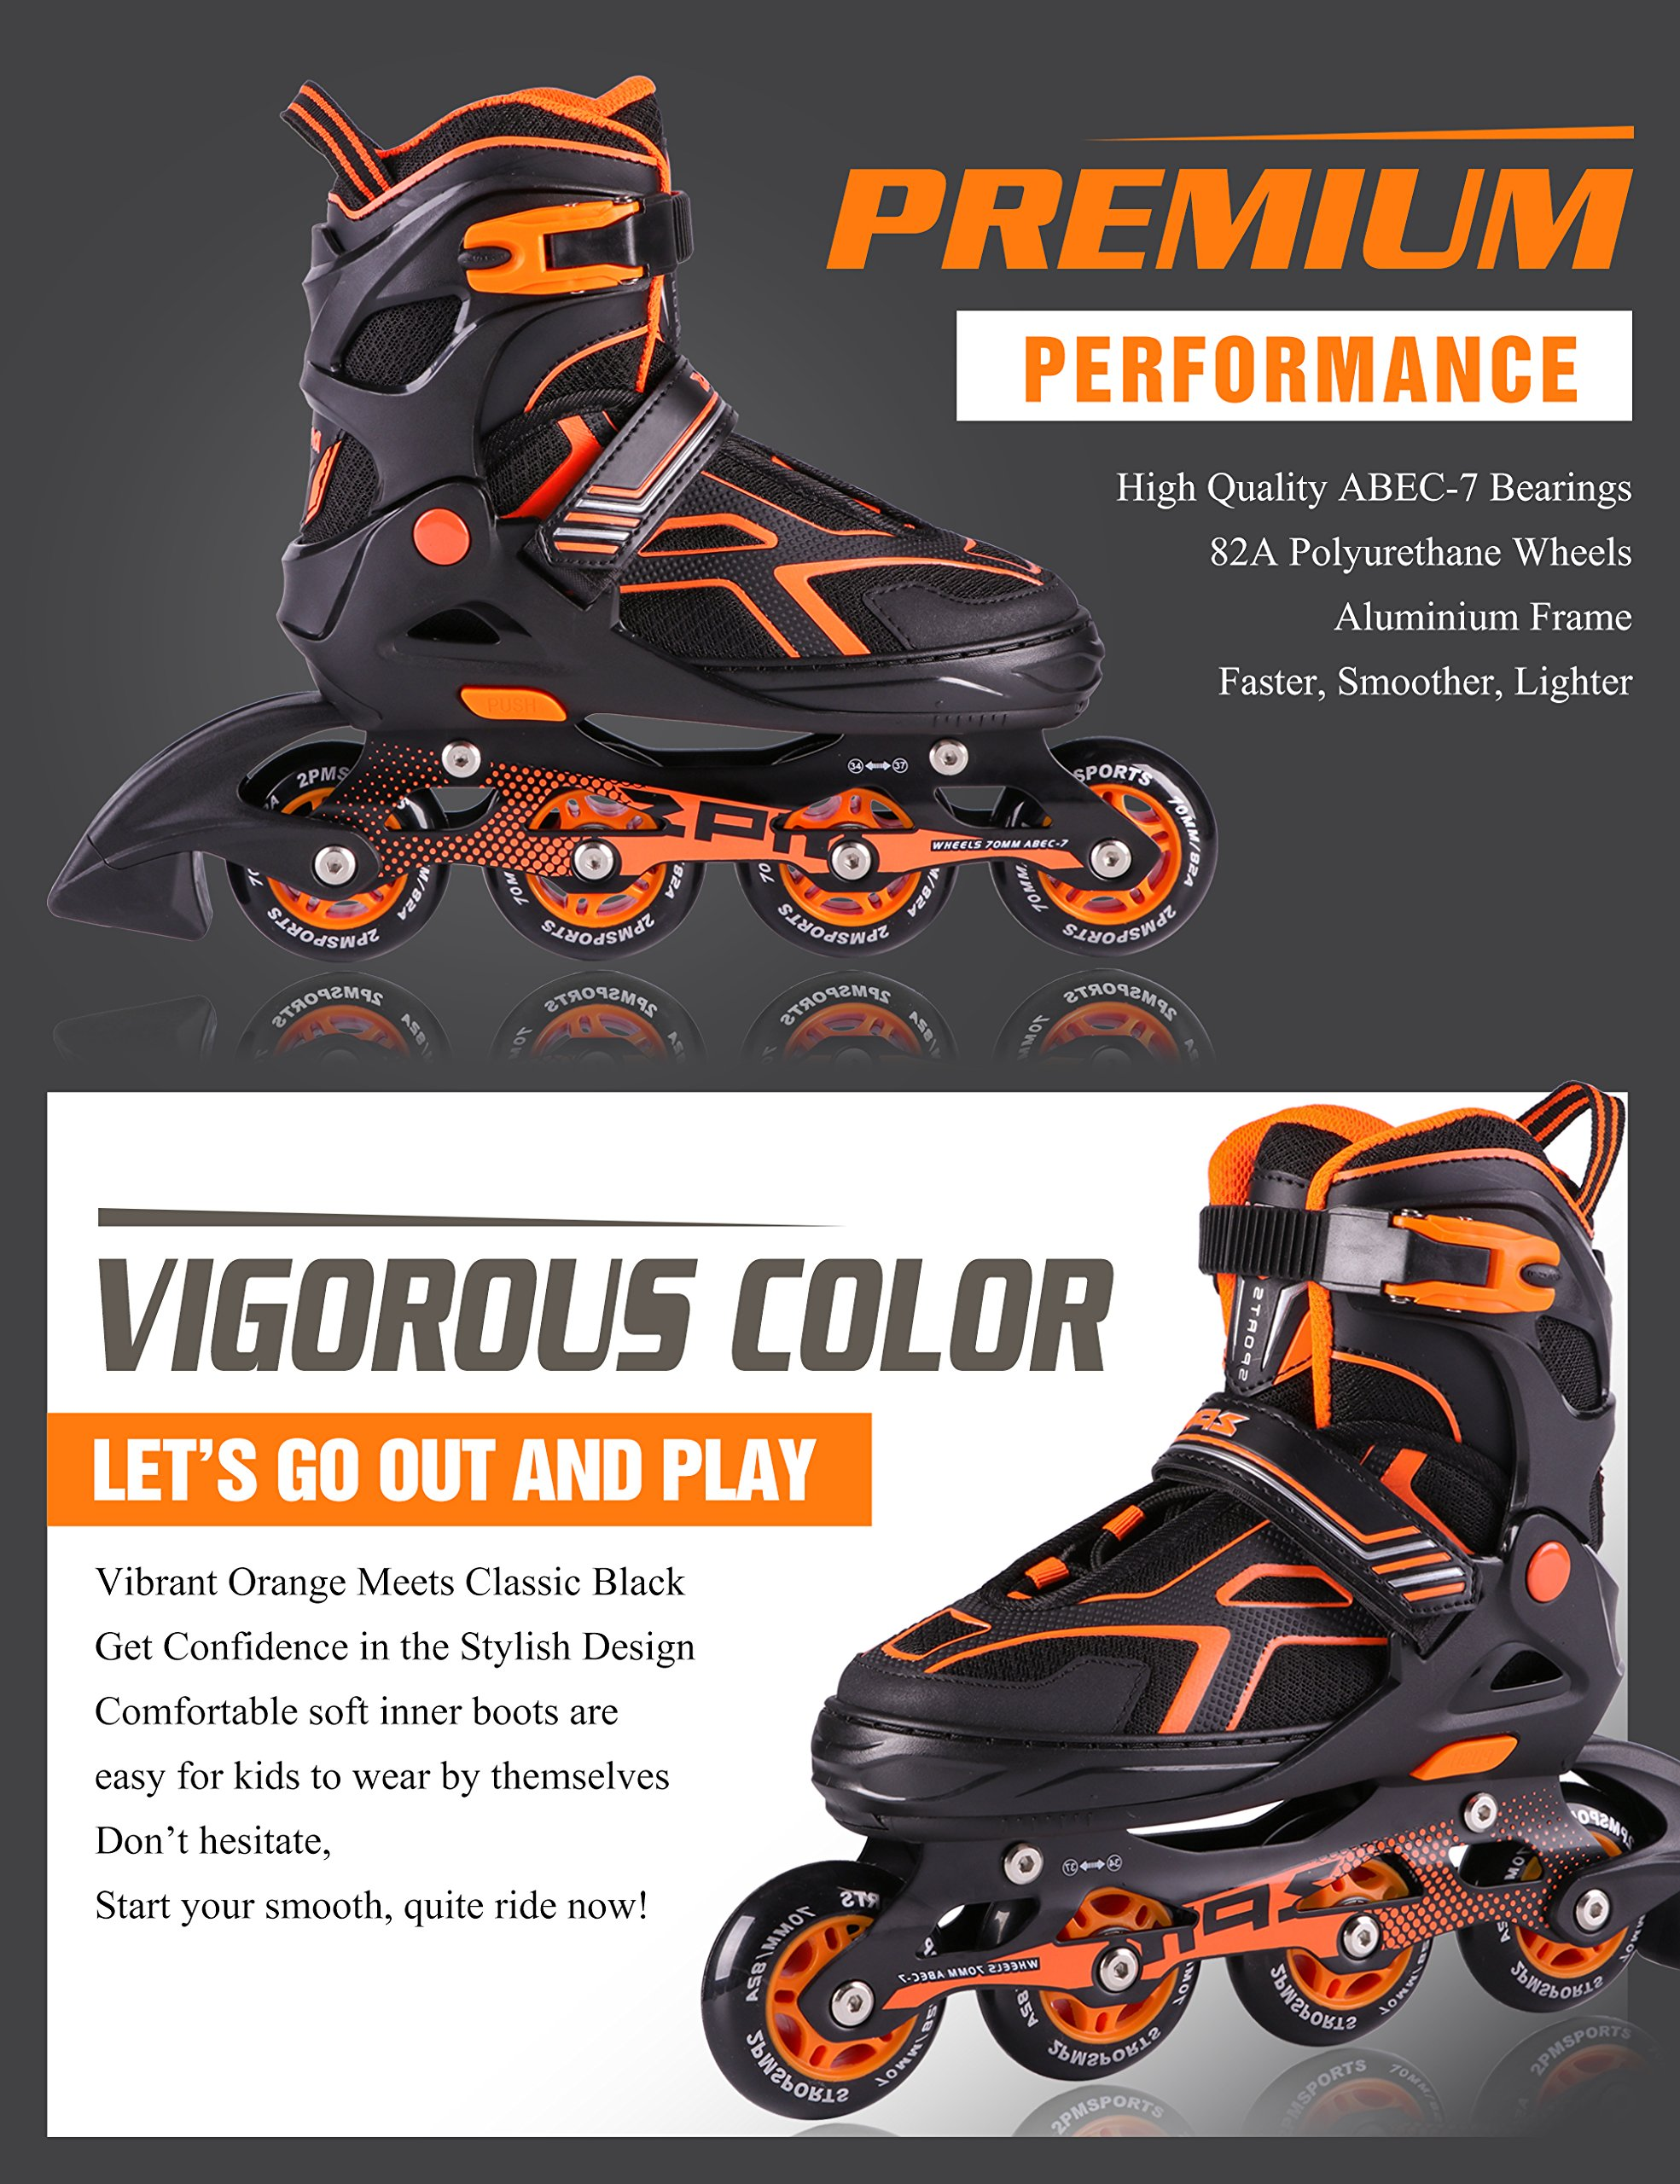 2PM SPORTS Torinx Orange Black Boys Adjustable Inline Skates, Fun Skates for Kids, Beginner Roller Skates for Girls, Men and Ladies - Medium (US 2-5) by 2PM SPORTS (Image #4)